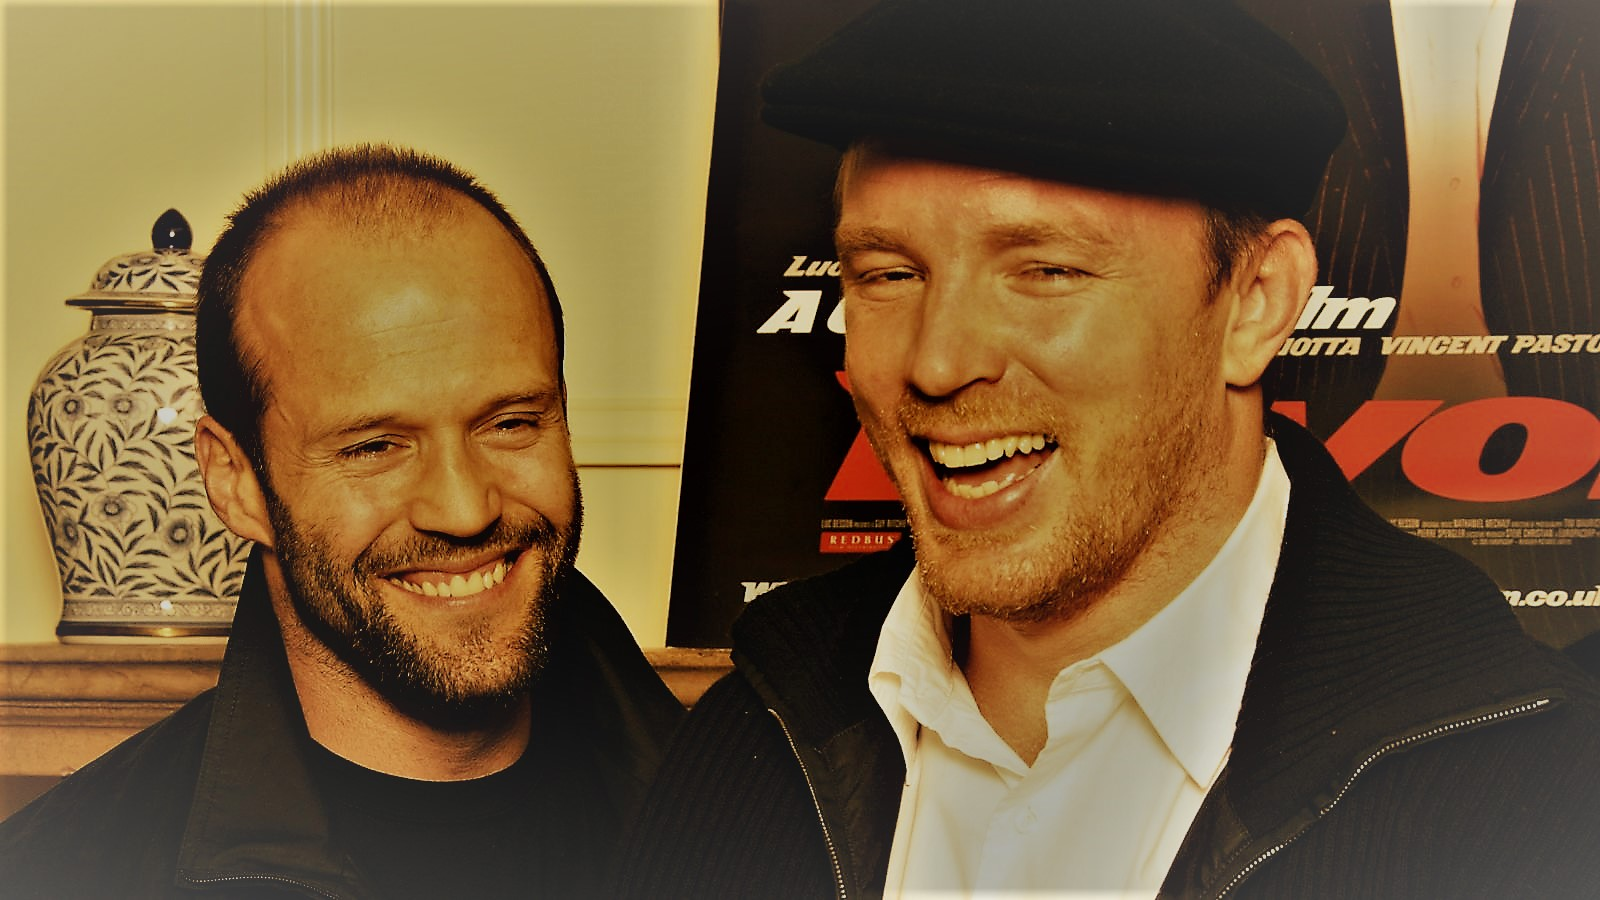 guy-ritchie-and-jason-statham-team-up-for-an-action-thriller